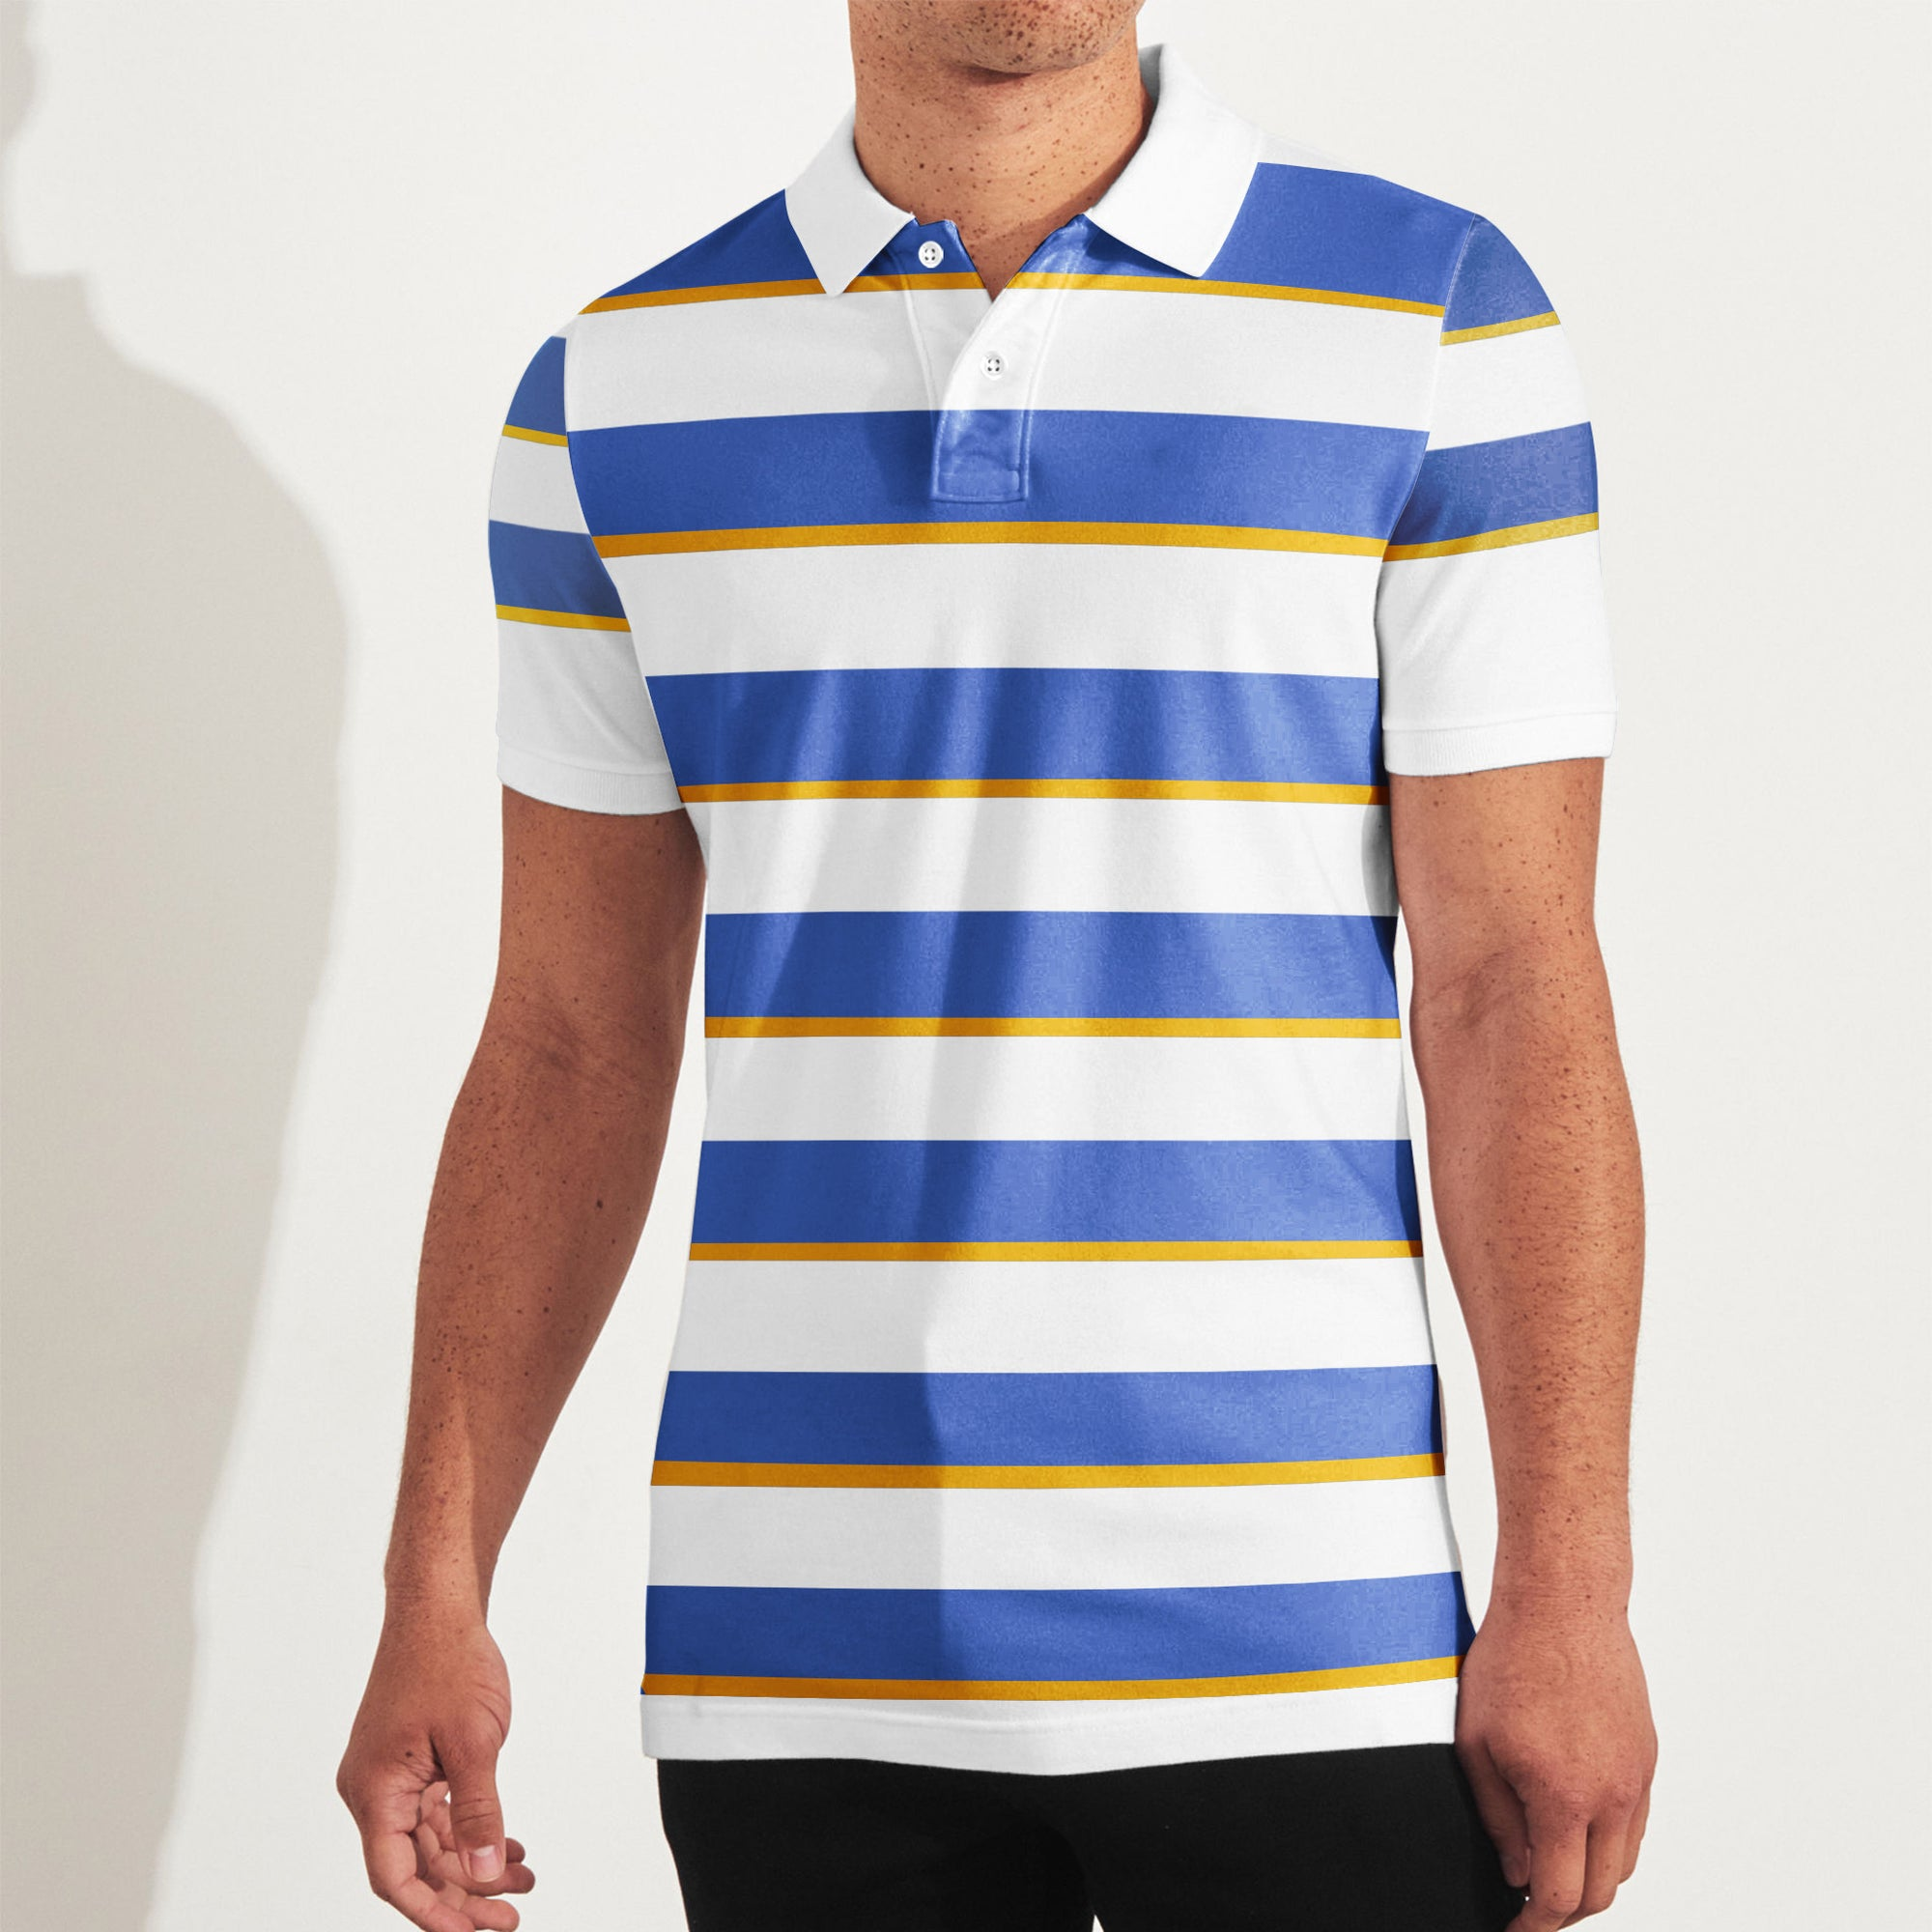 brandsego - The Modern Short Sleeve P.Q Polo Shirt For Men-White with Stripe-BE8430